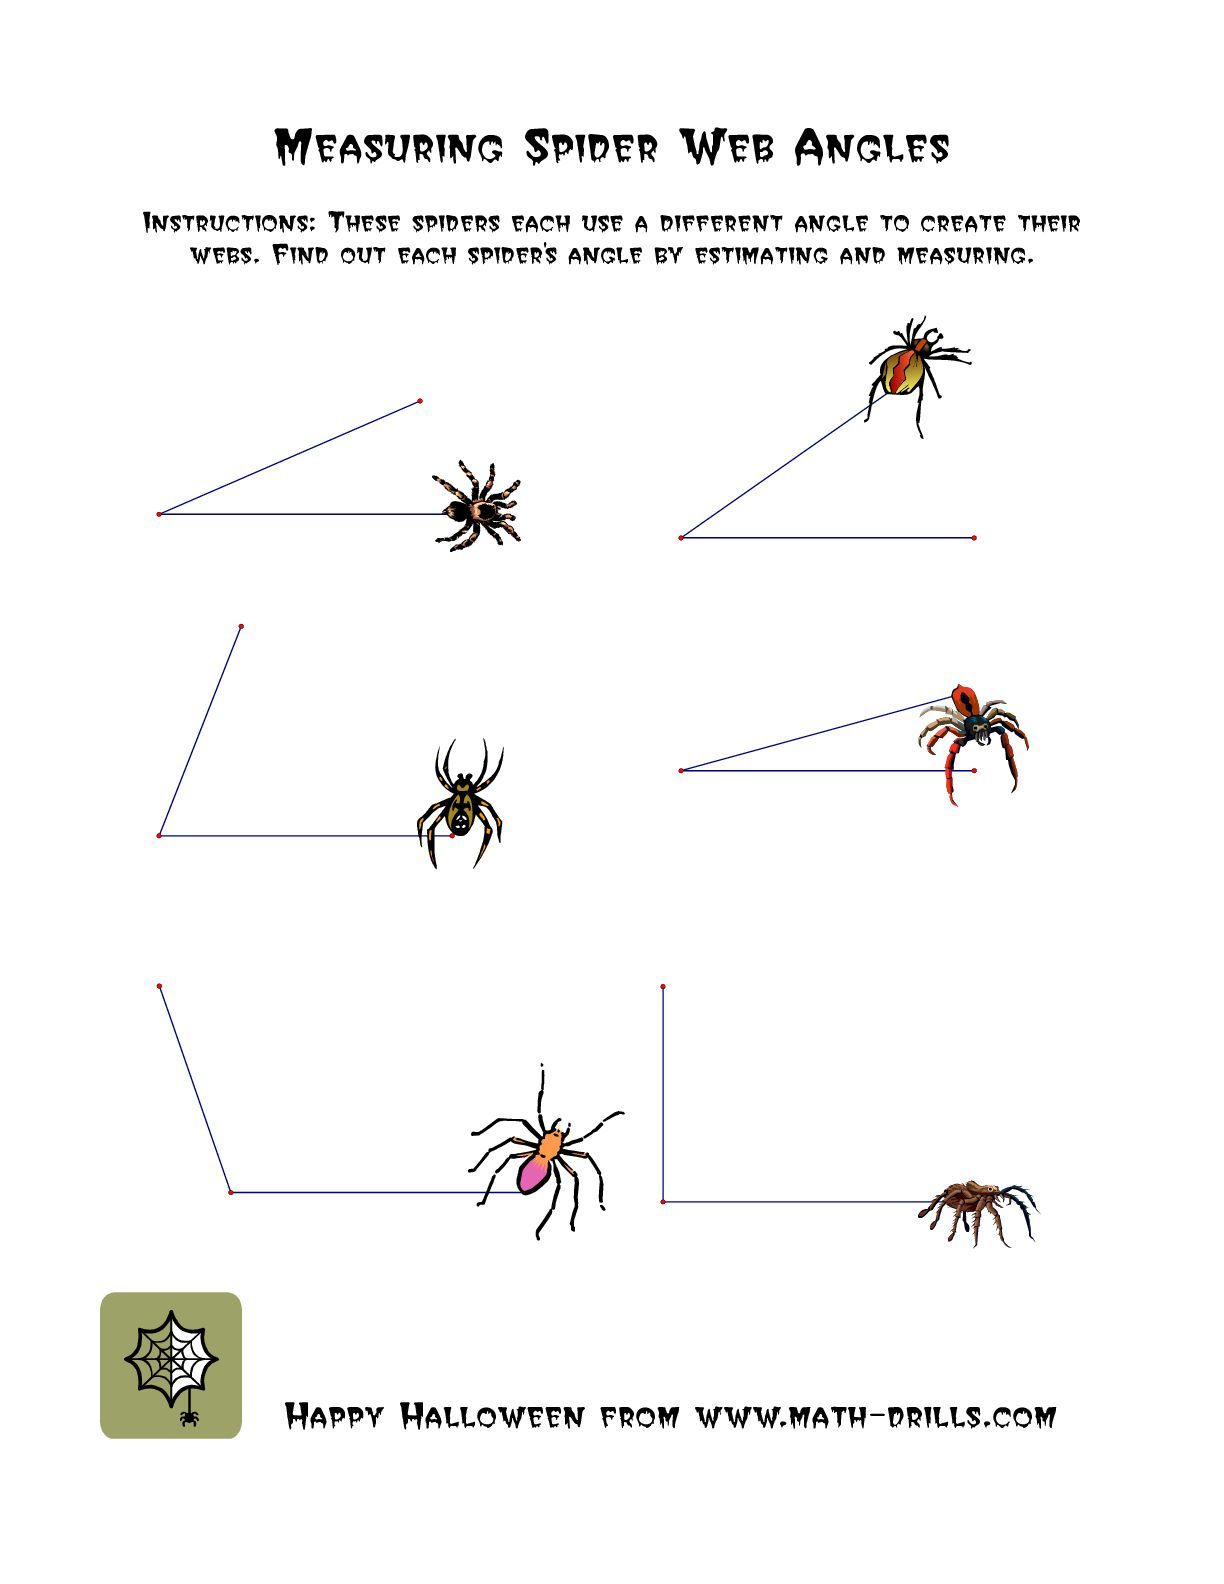 The Measuring Spider Web Angles